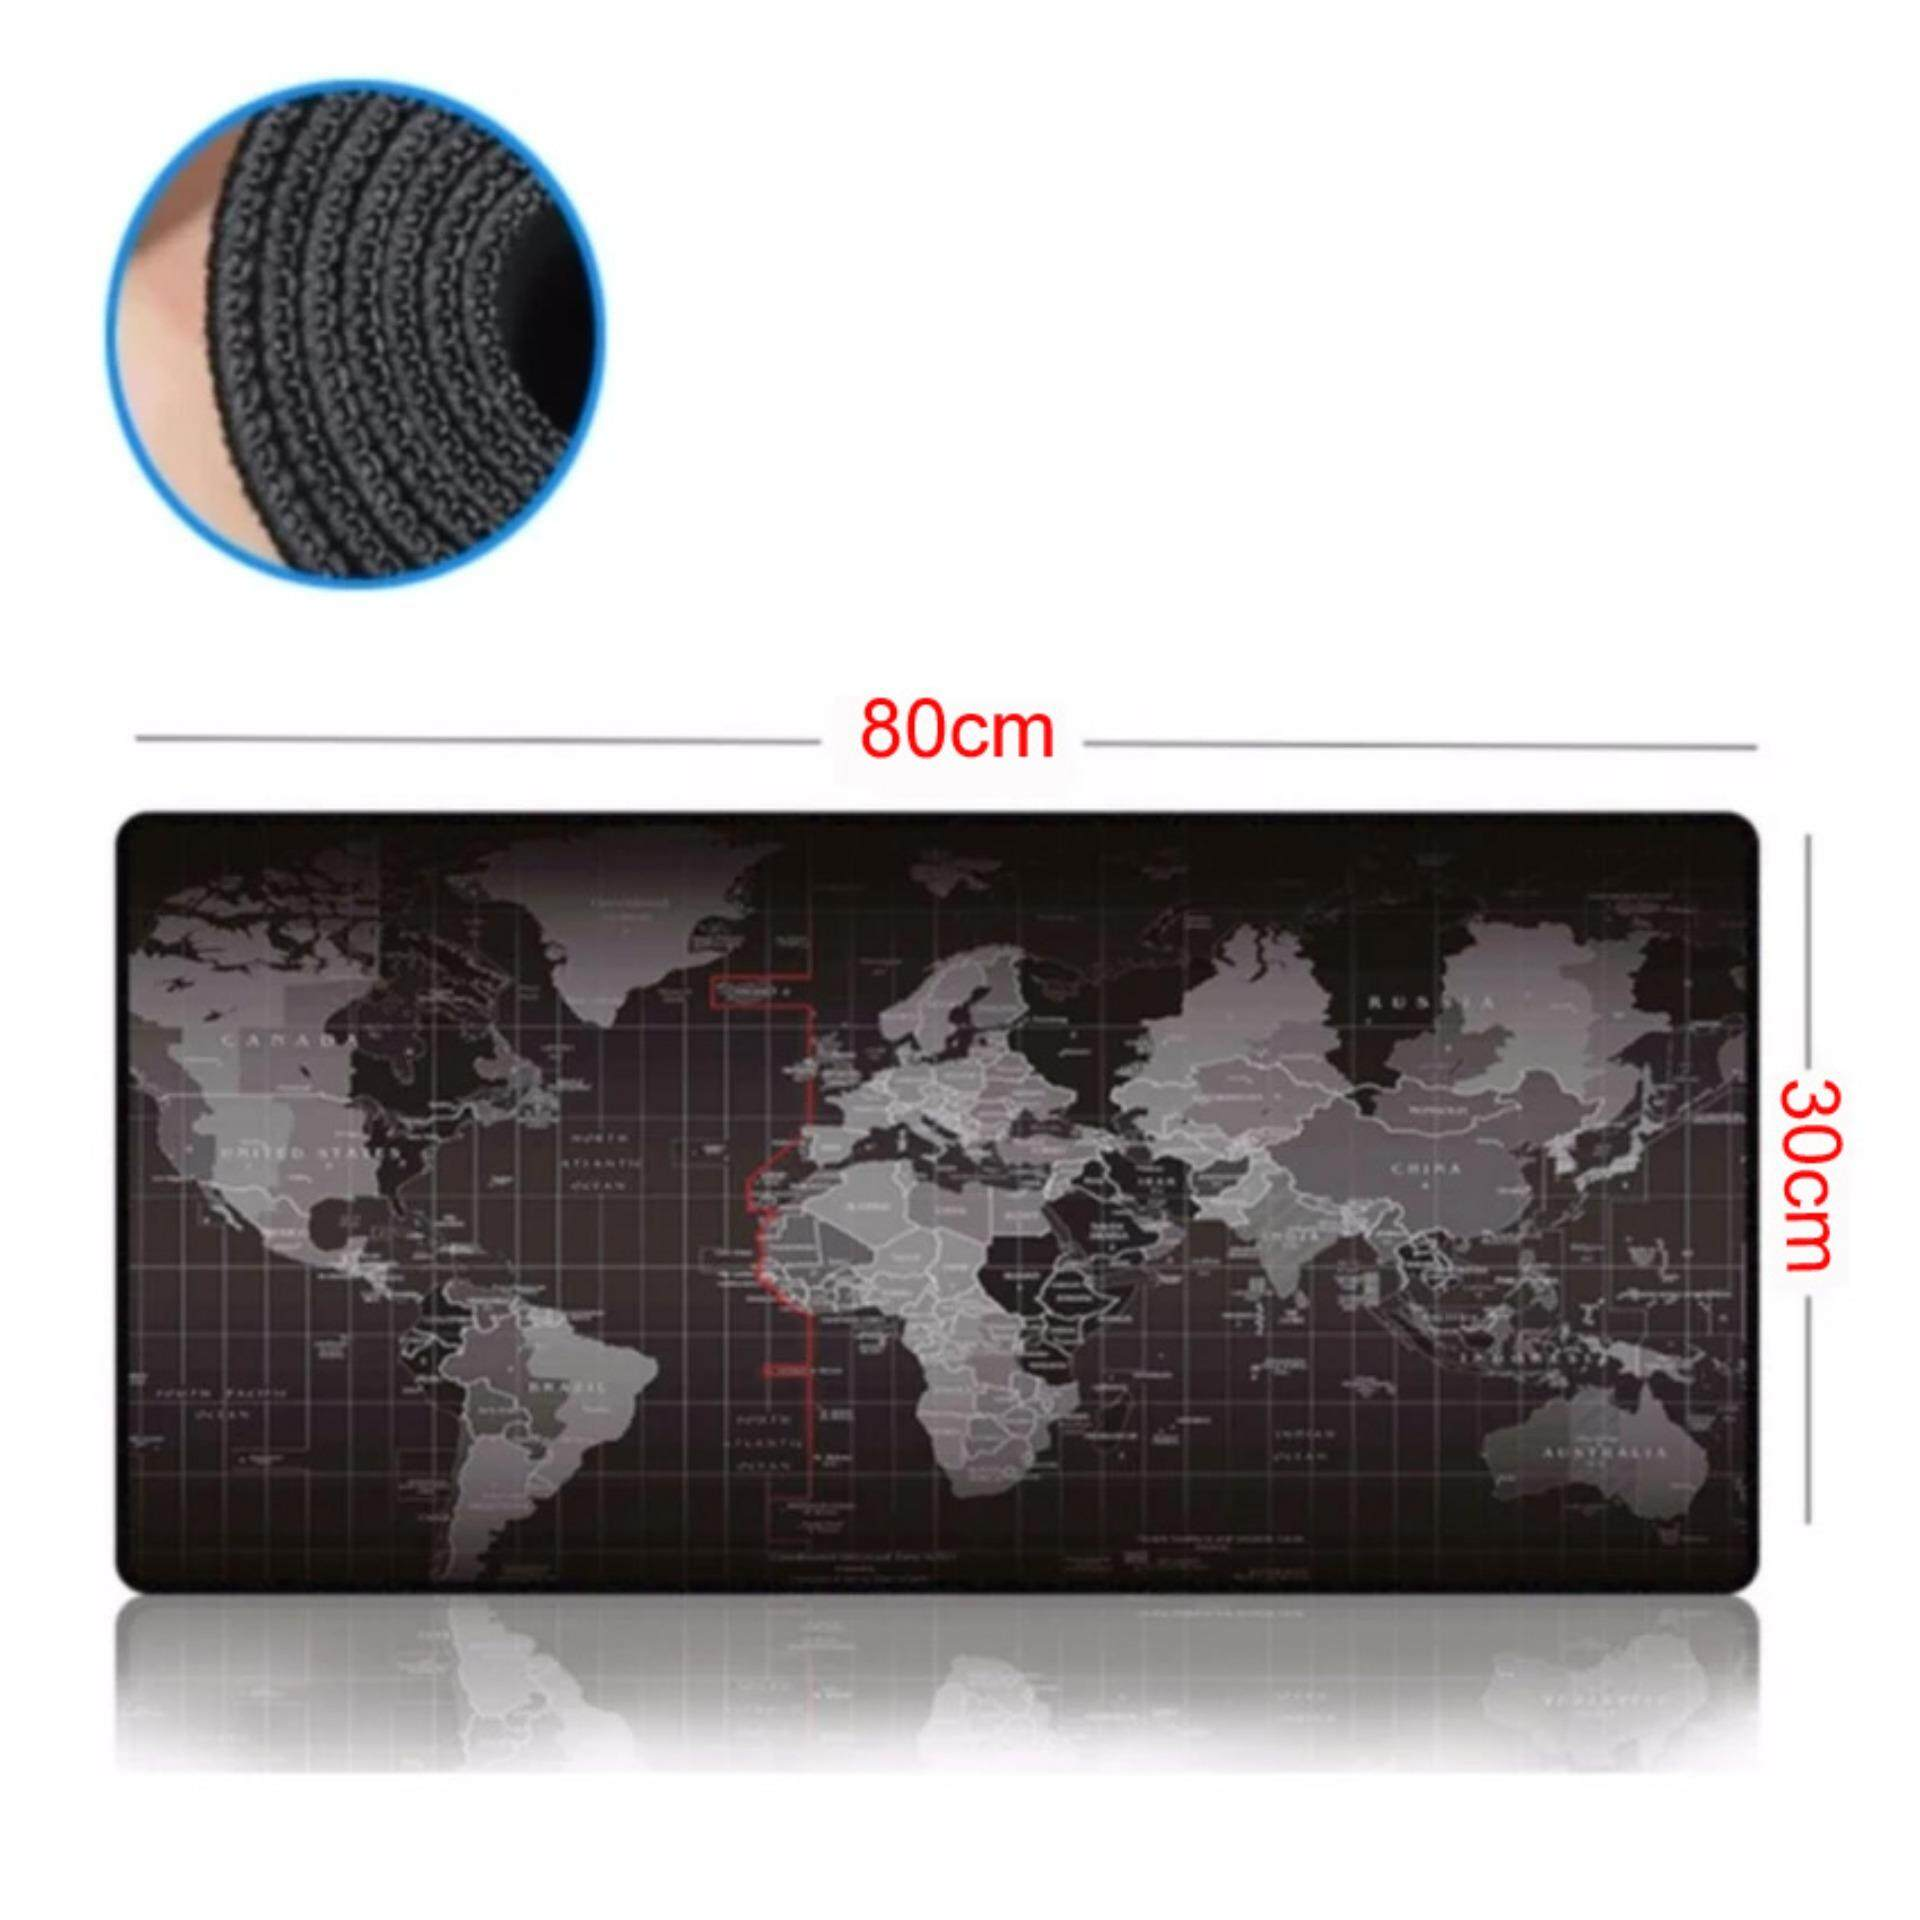 Big Size 80 x 30 x 0.2cm M02 Gaming Mat Non-slip Anti Fray Stitching High Quality Beautiful Mouse Pad Malaysia